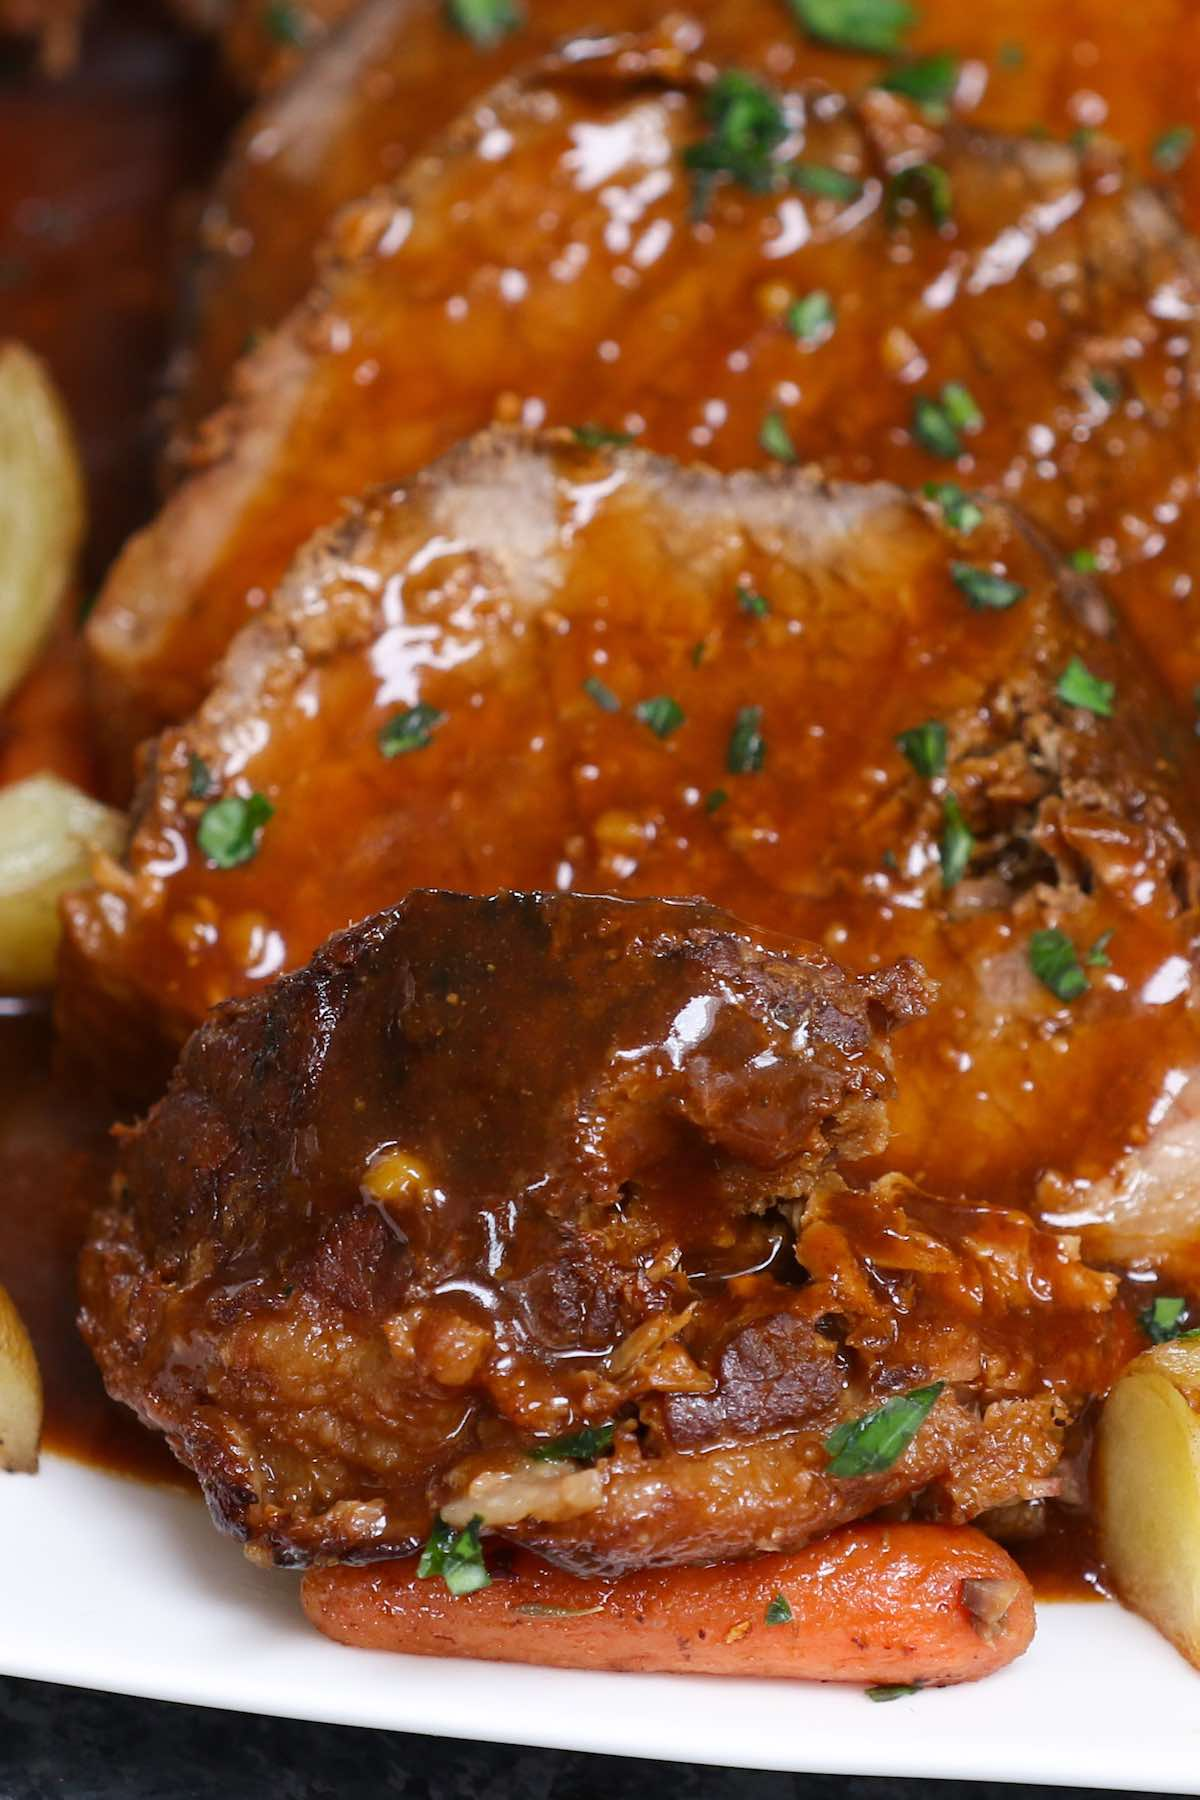 Closeup of roast beef with gravy on top